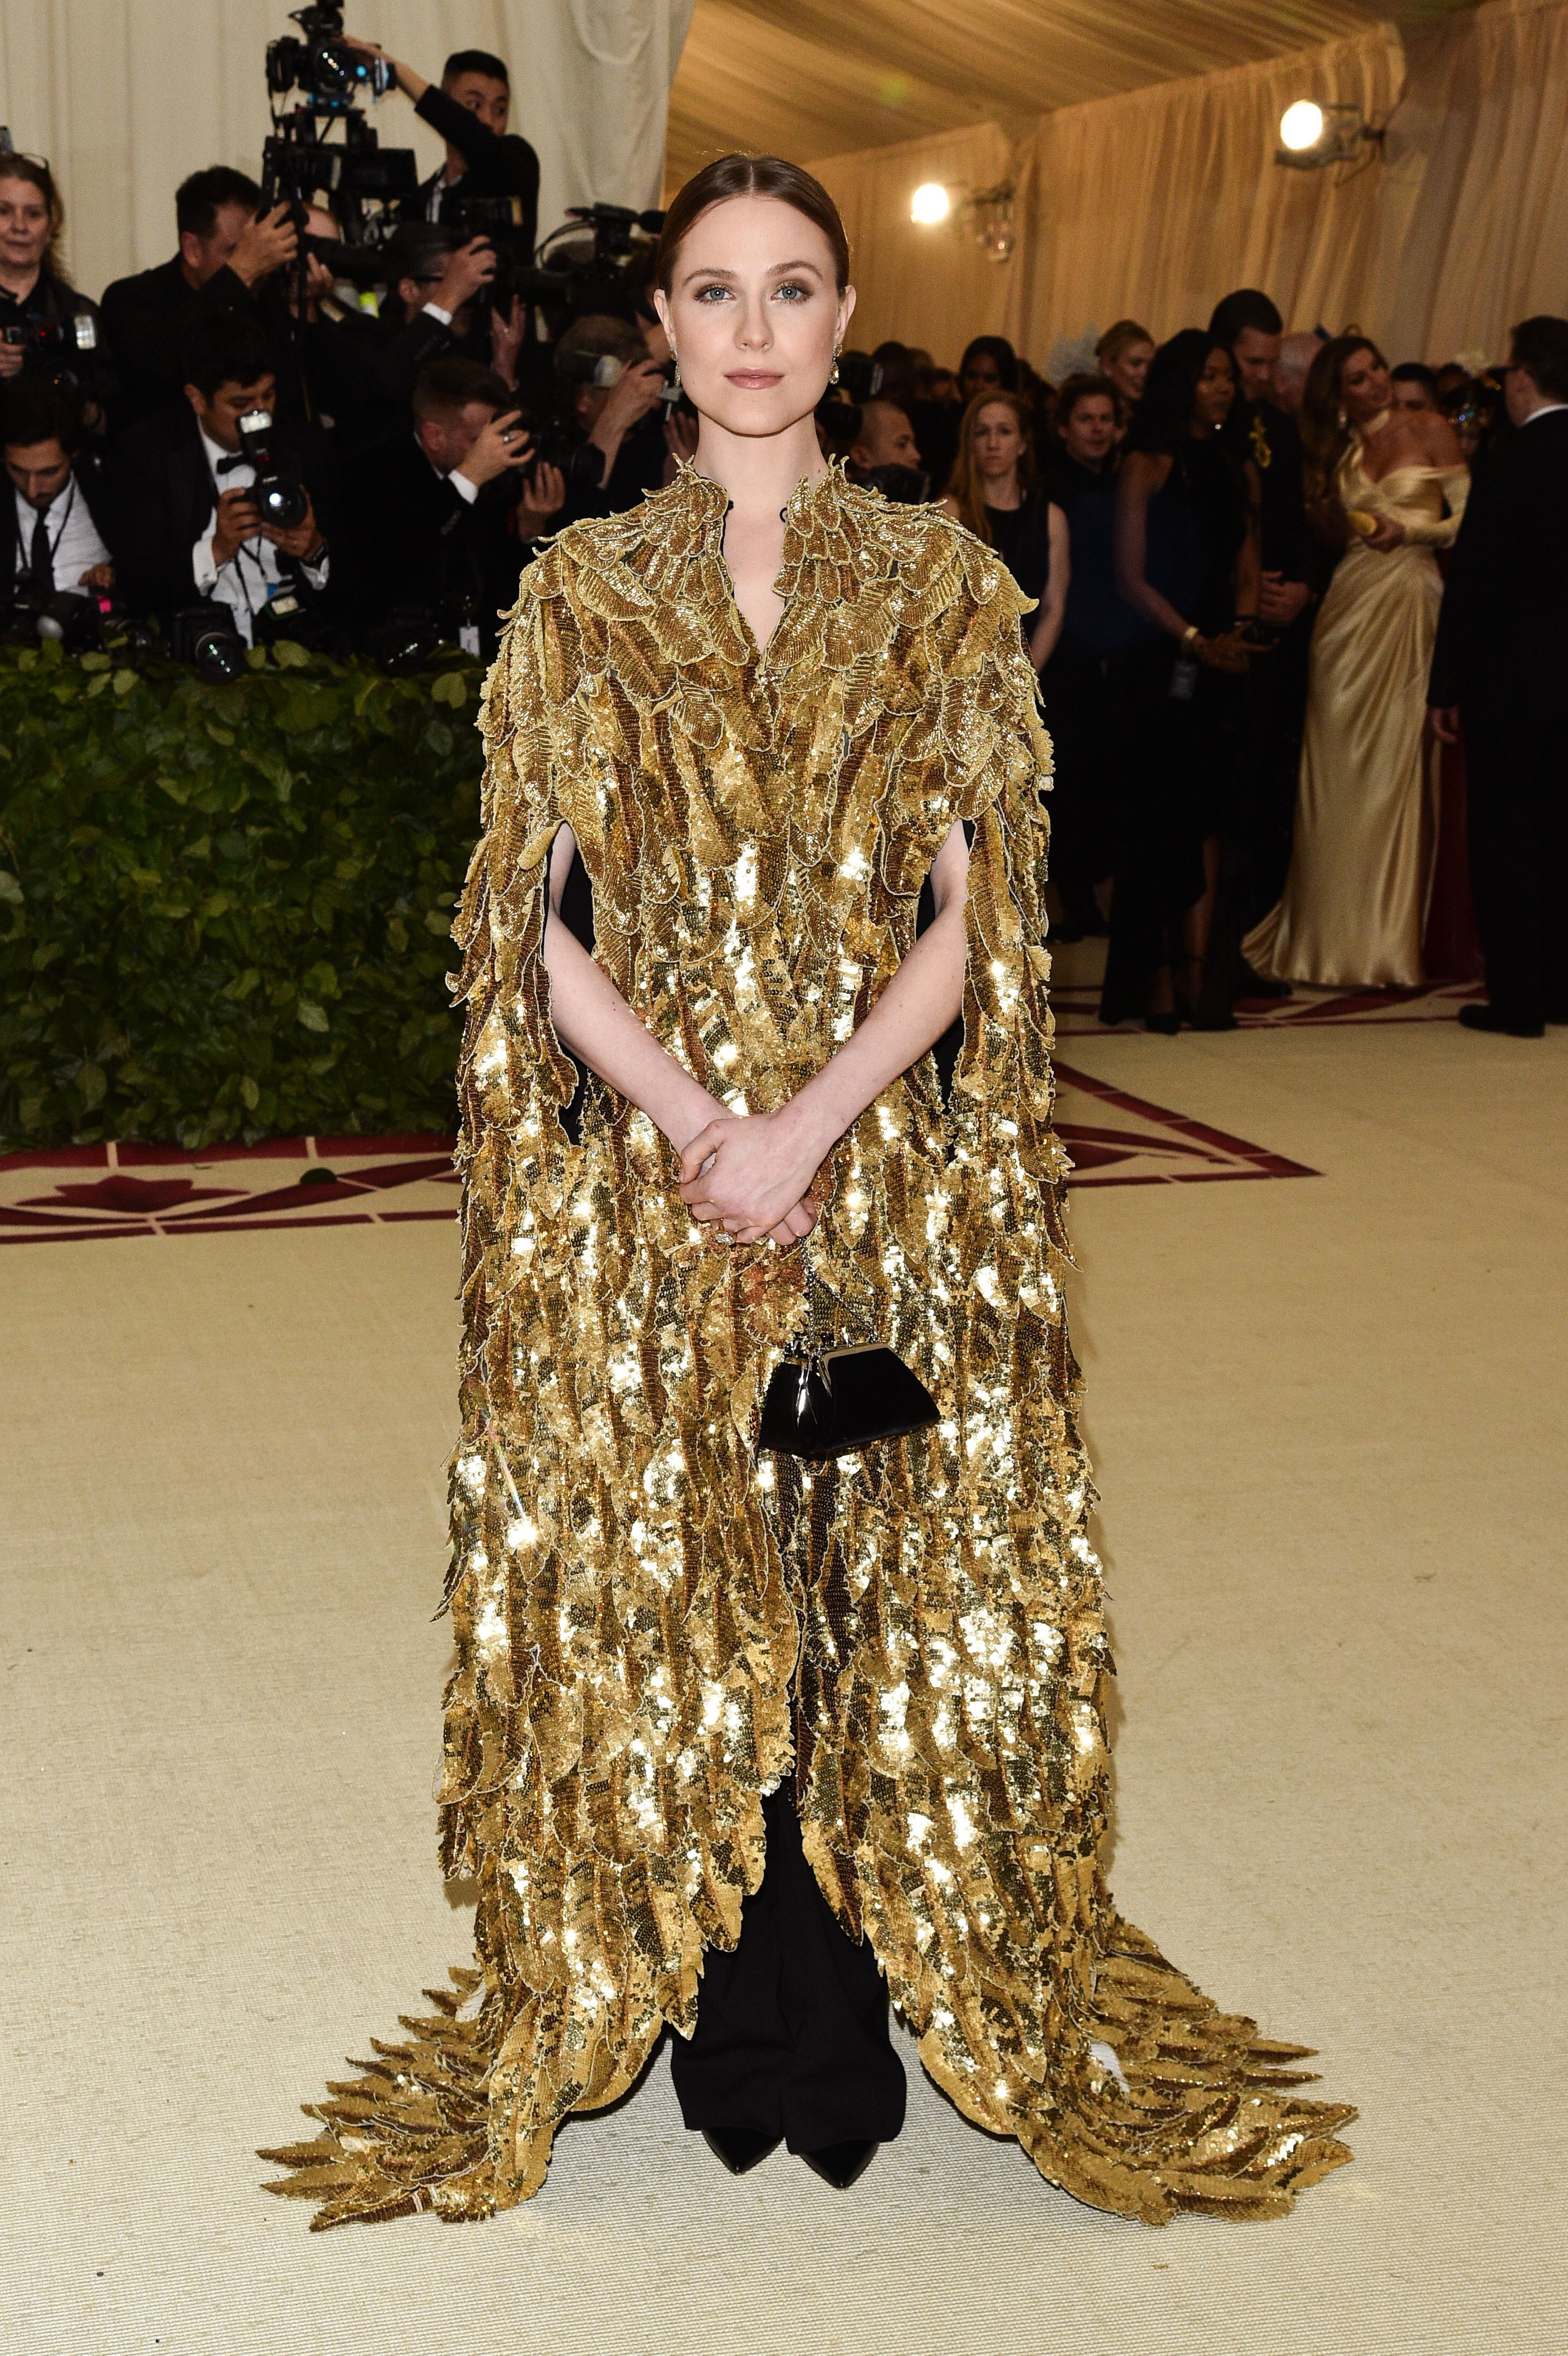 Evan Rachel Wood attends The Metropolitan Museum of Art's Costume Institute Benefit celebrating the opening of Heavenly Bodies: Fashion and the Catholic Imagination in New York City on May 7, 2018.